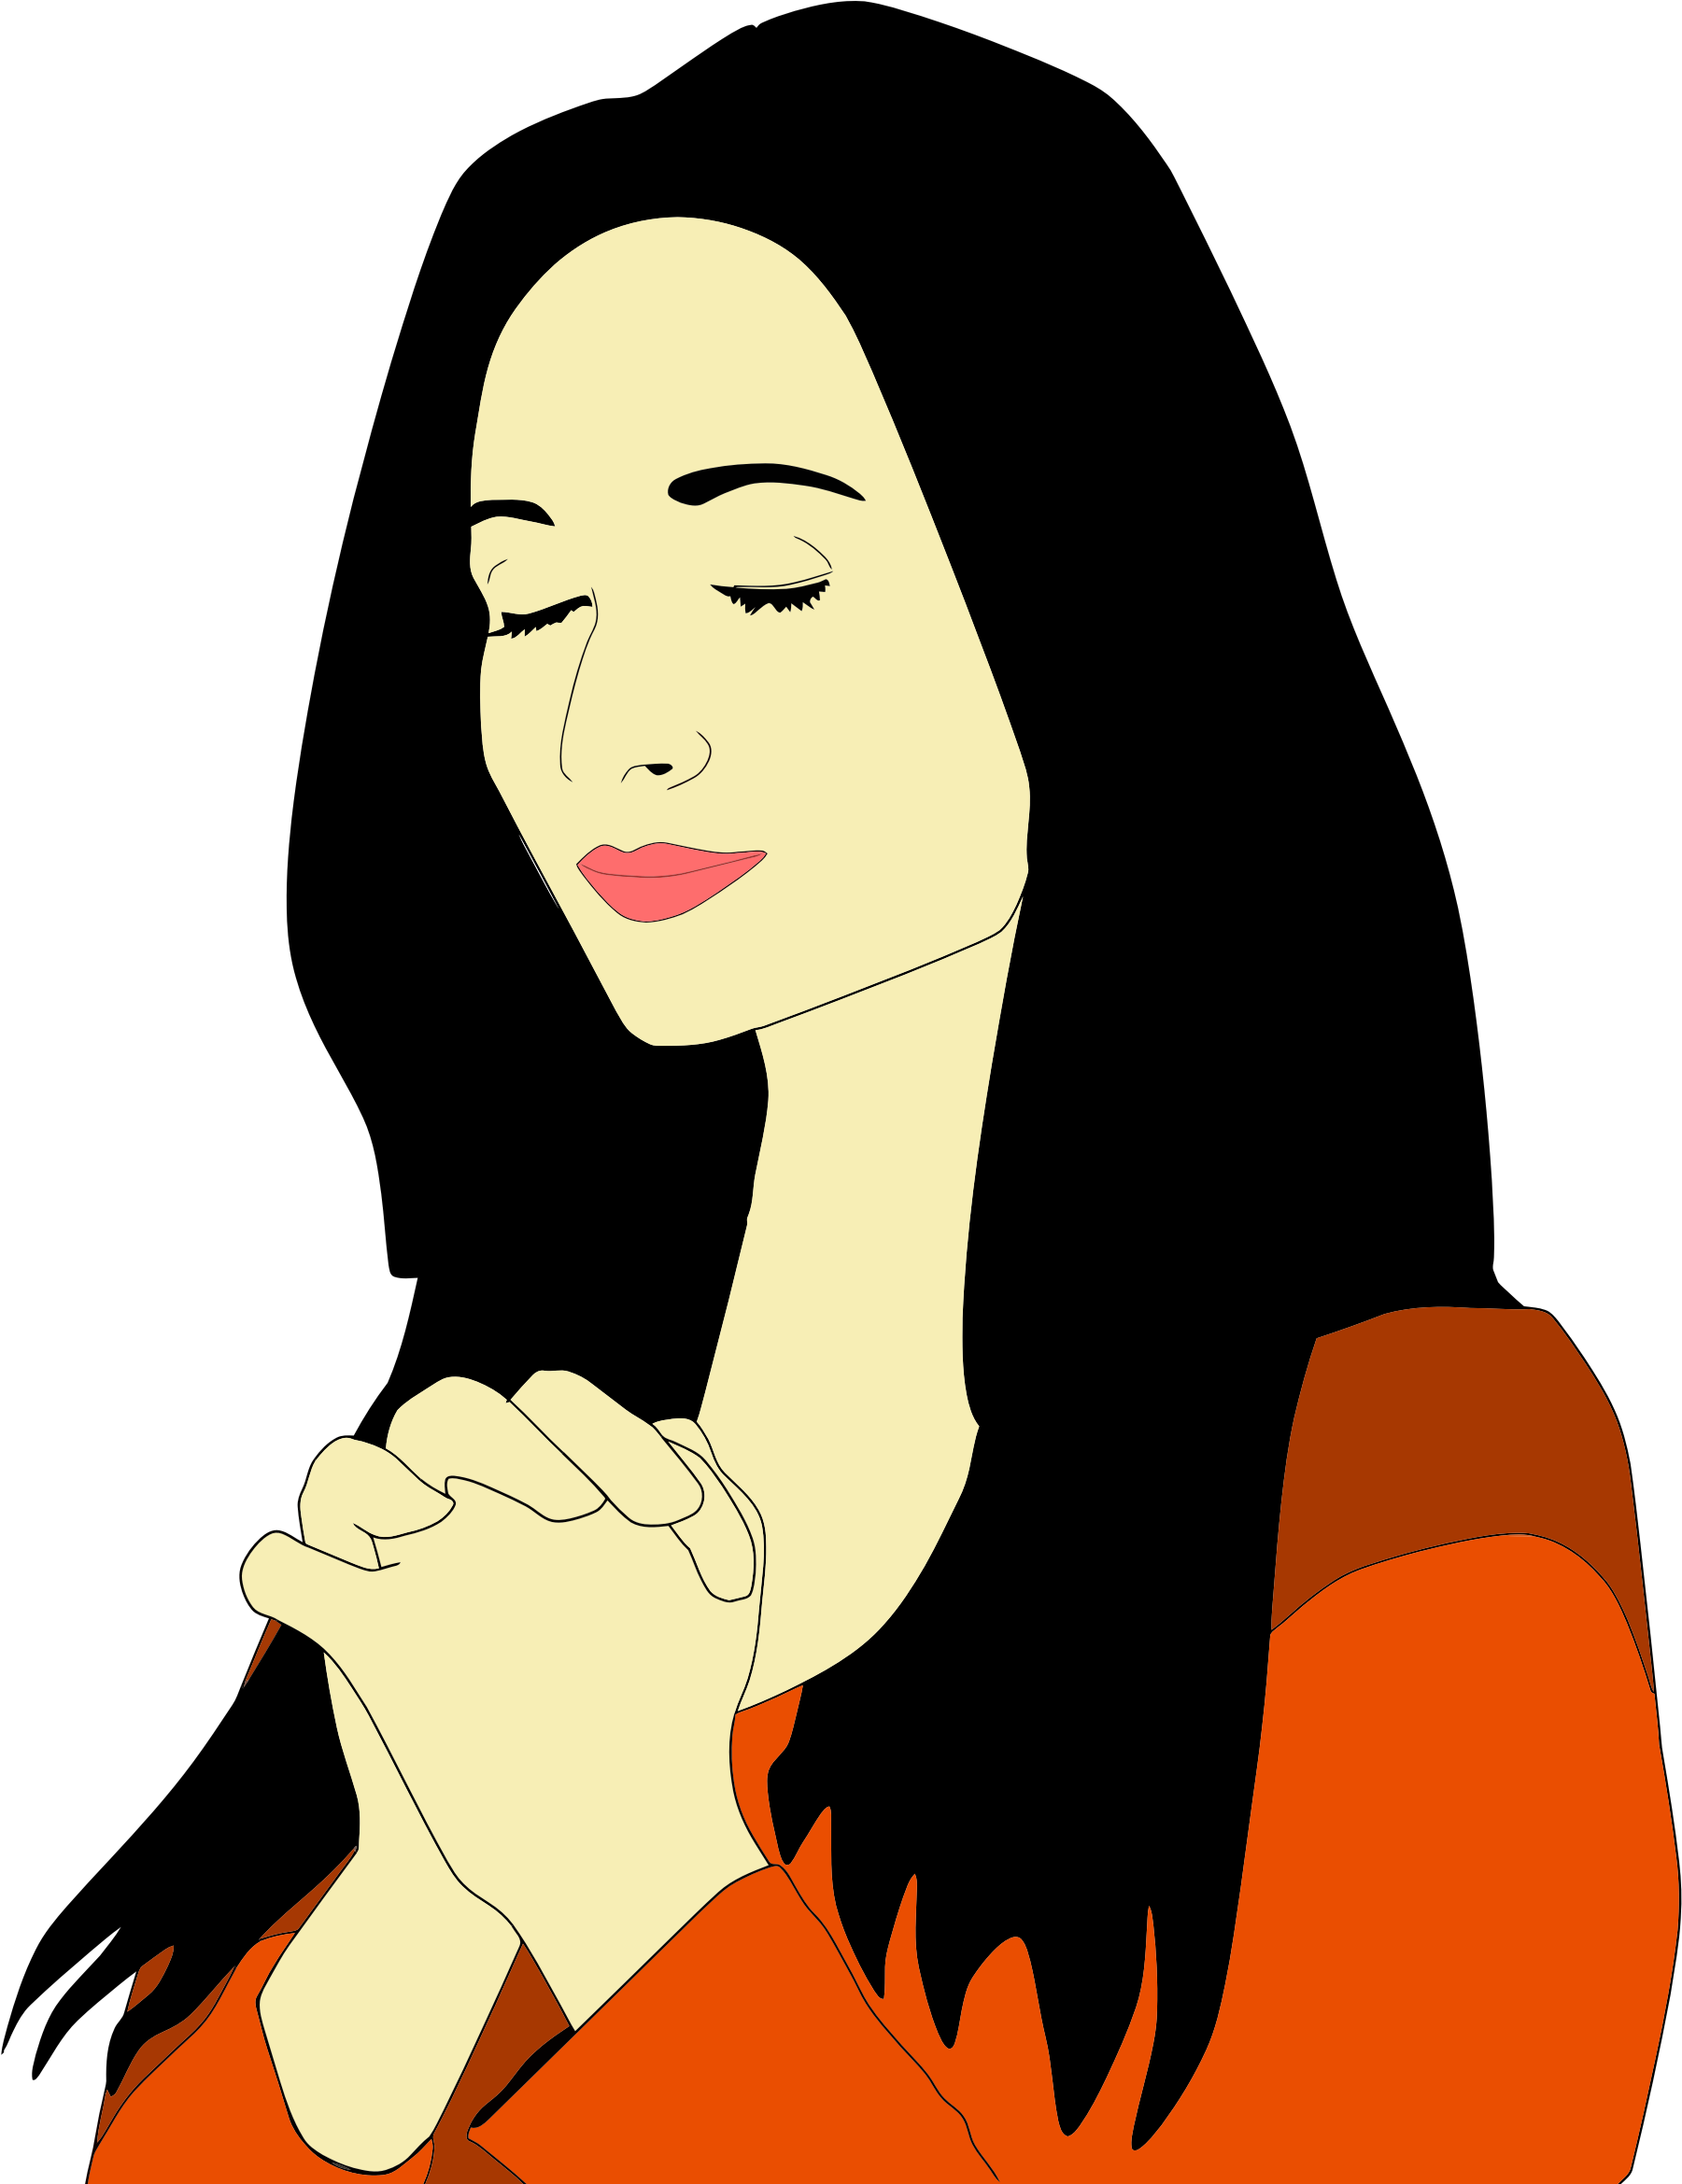 Prayer clipart png. Silhouette woman praying at